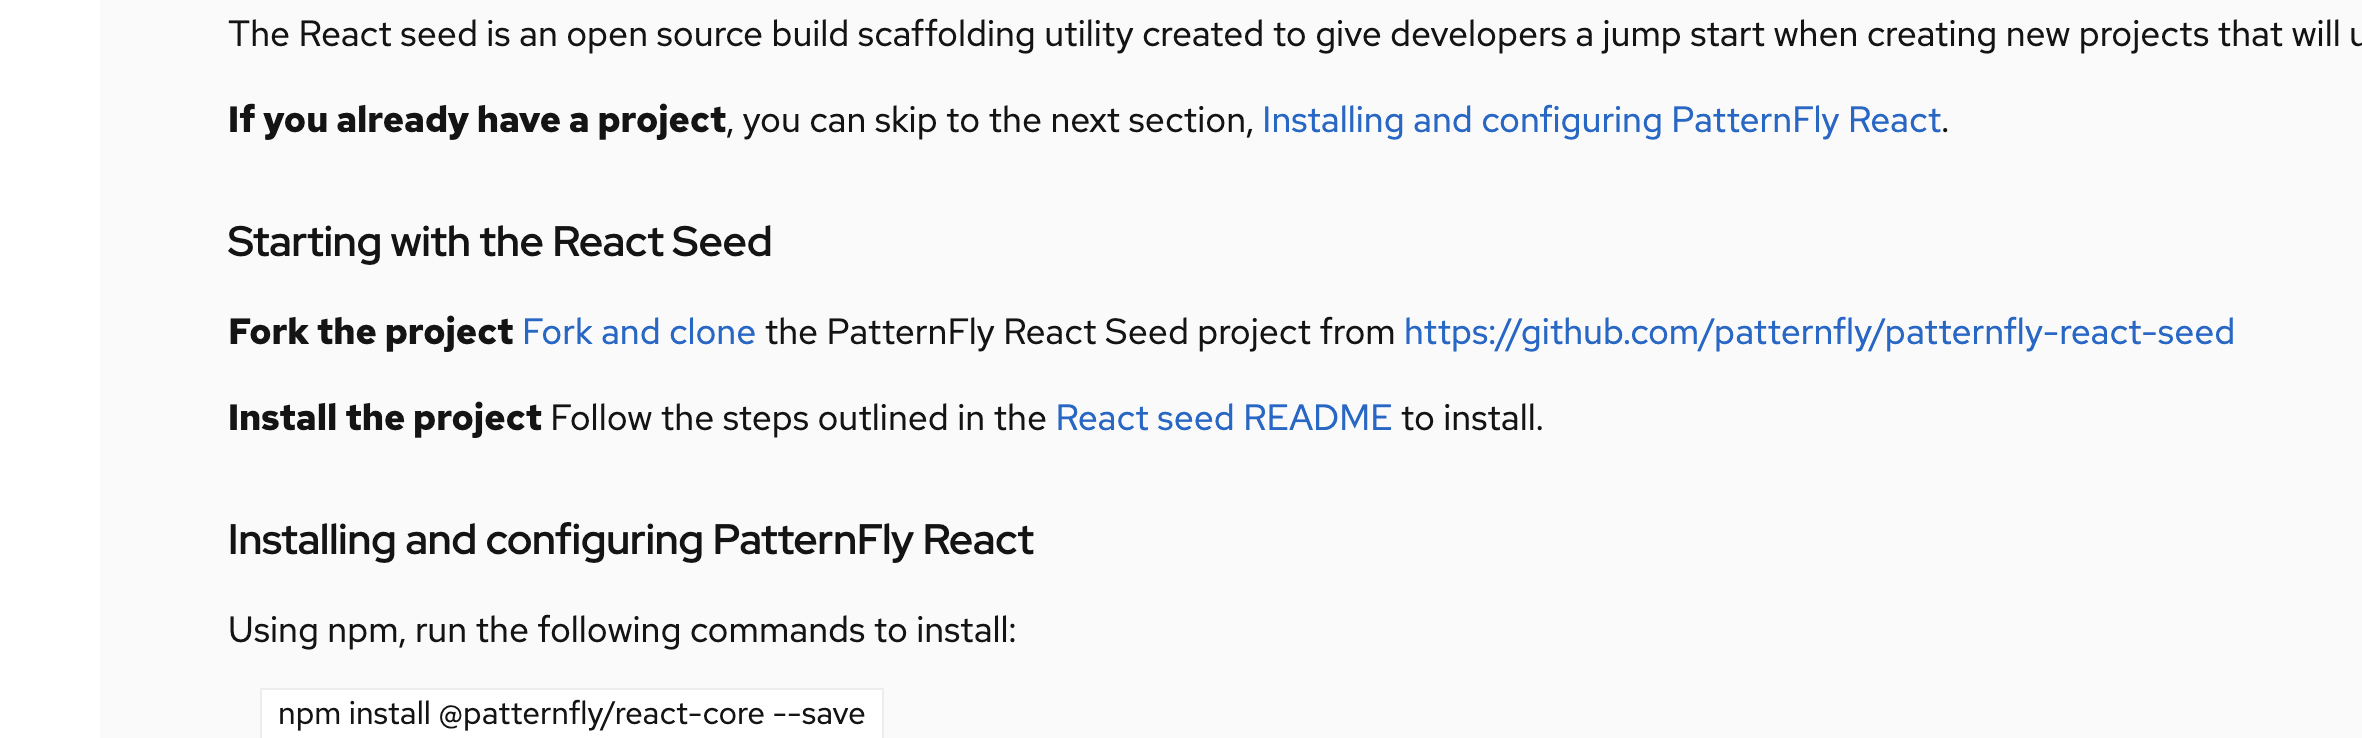 Javascript seed project is missing from getting started